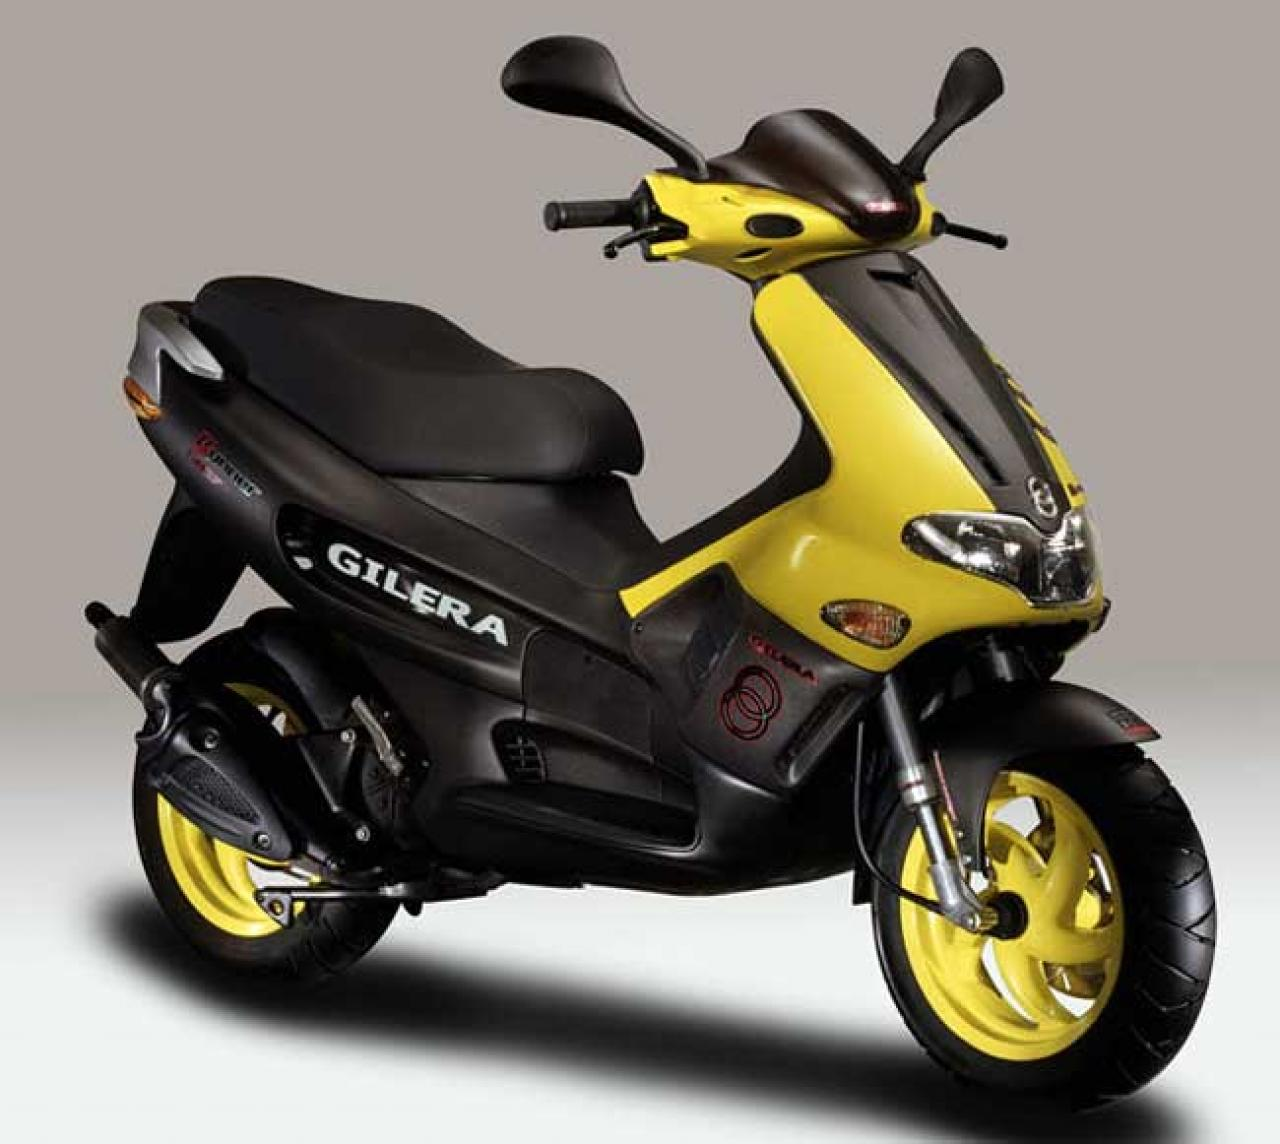 Gilera Runner Pure Jet 2009 images #73745